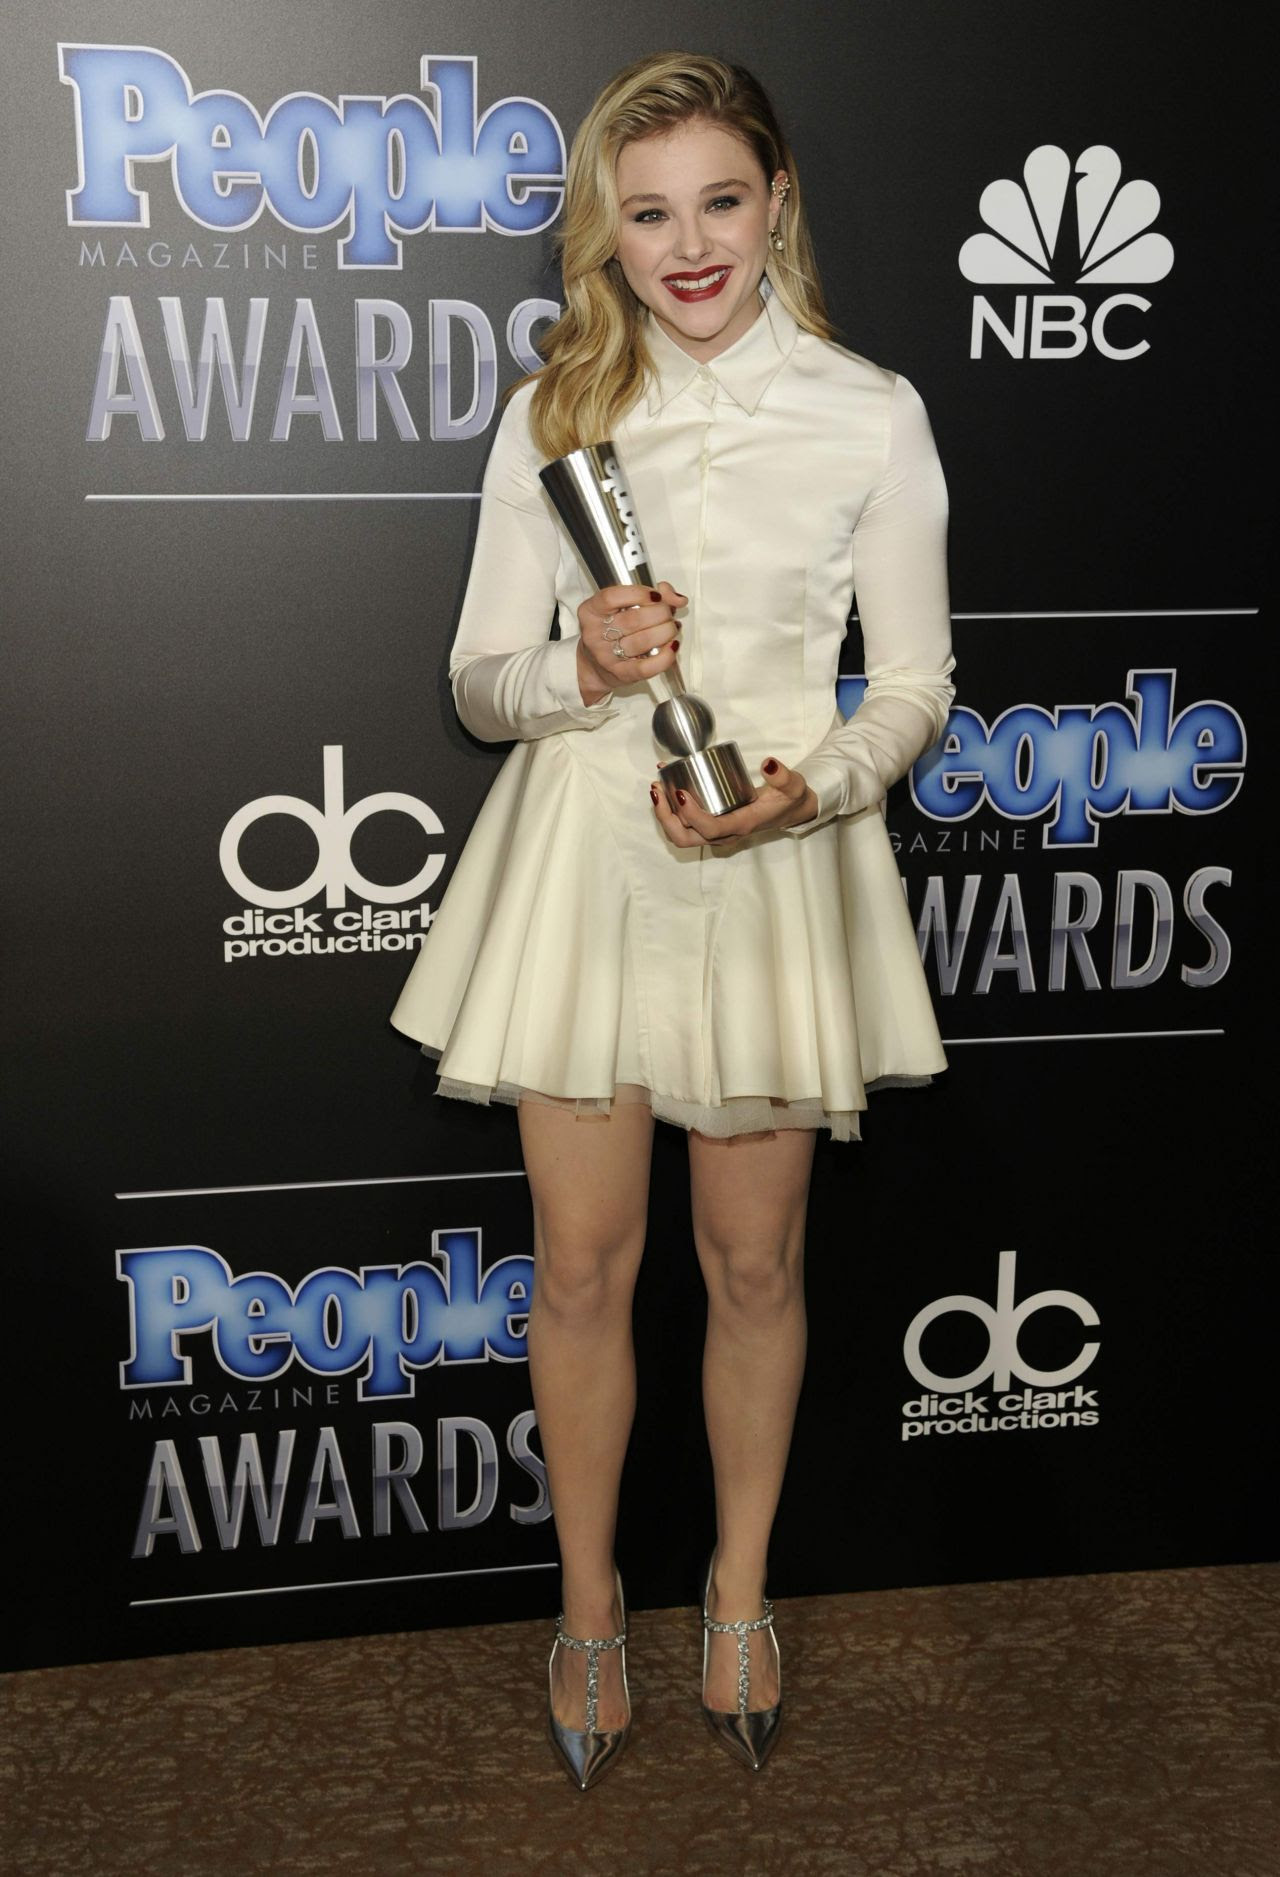 http://celebmafia.com/wp-content/uploads/2014/12/chloe-moretz-2014-people-magazine-awards-in-beverly-hills_5.jpg